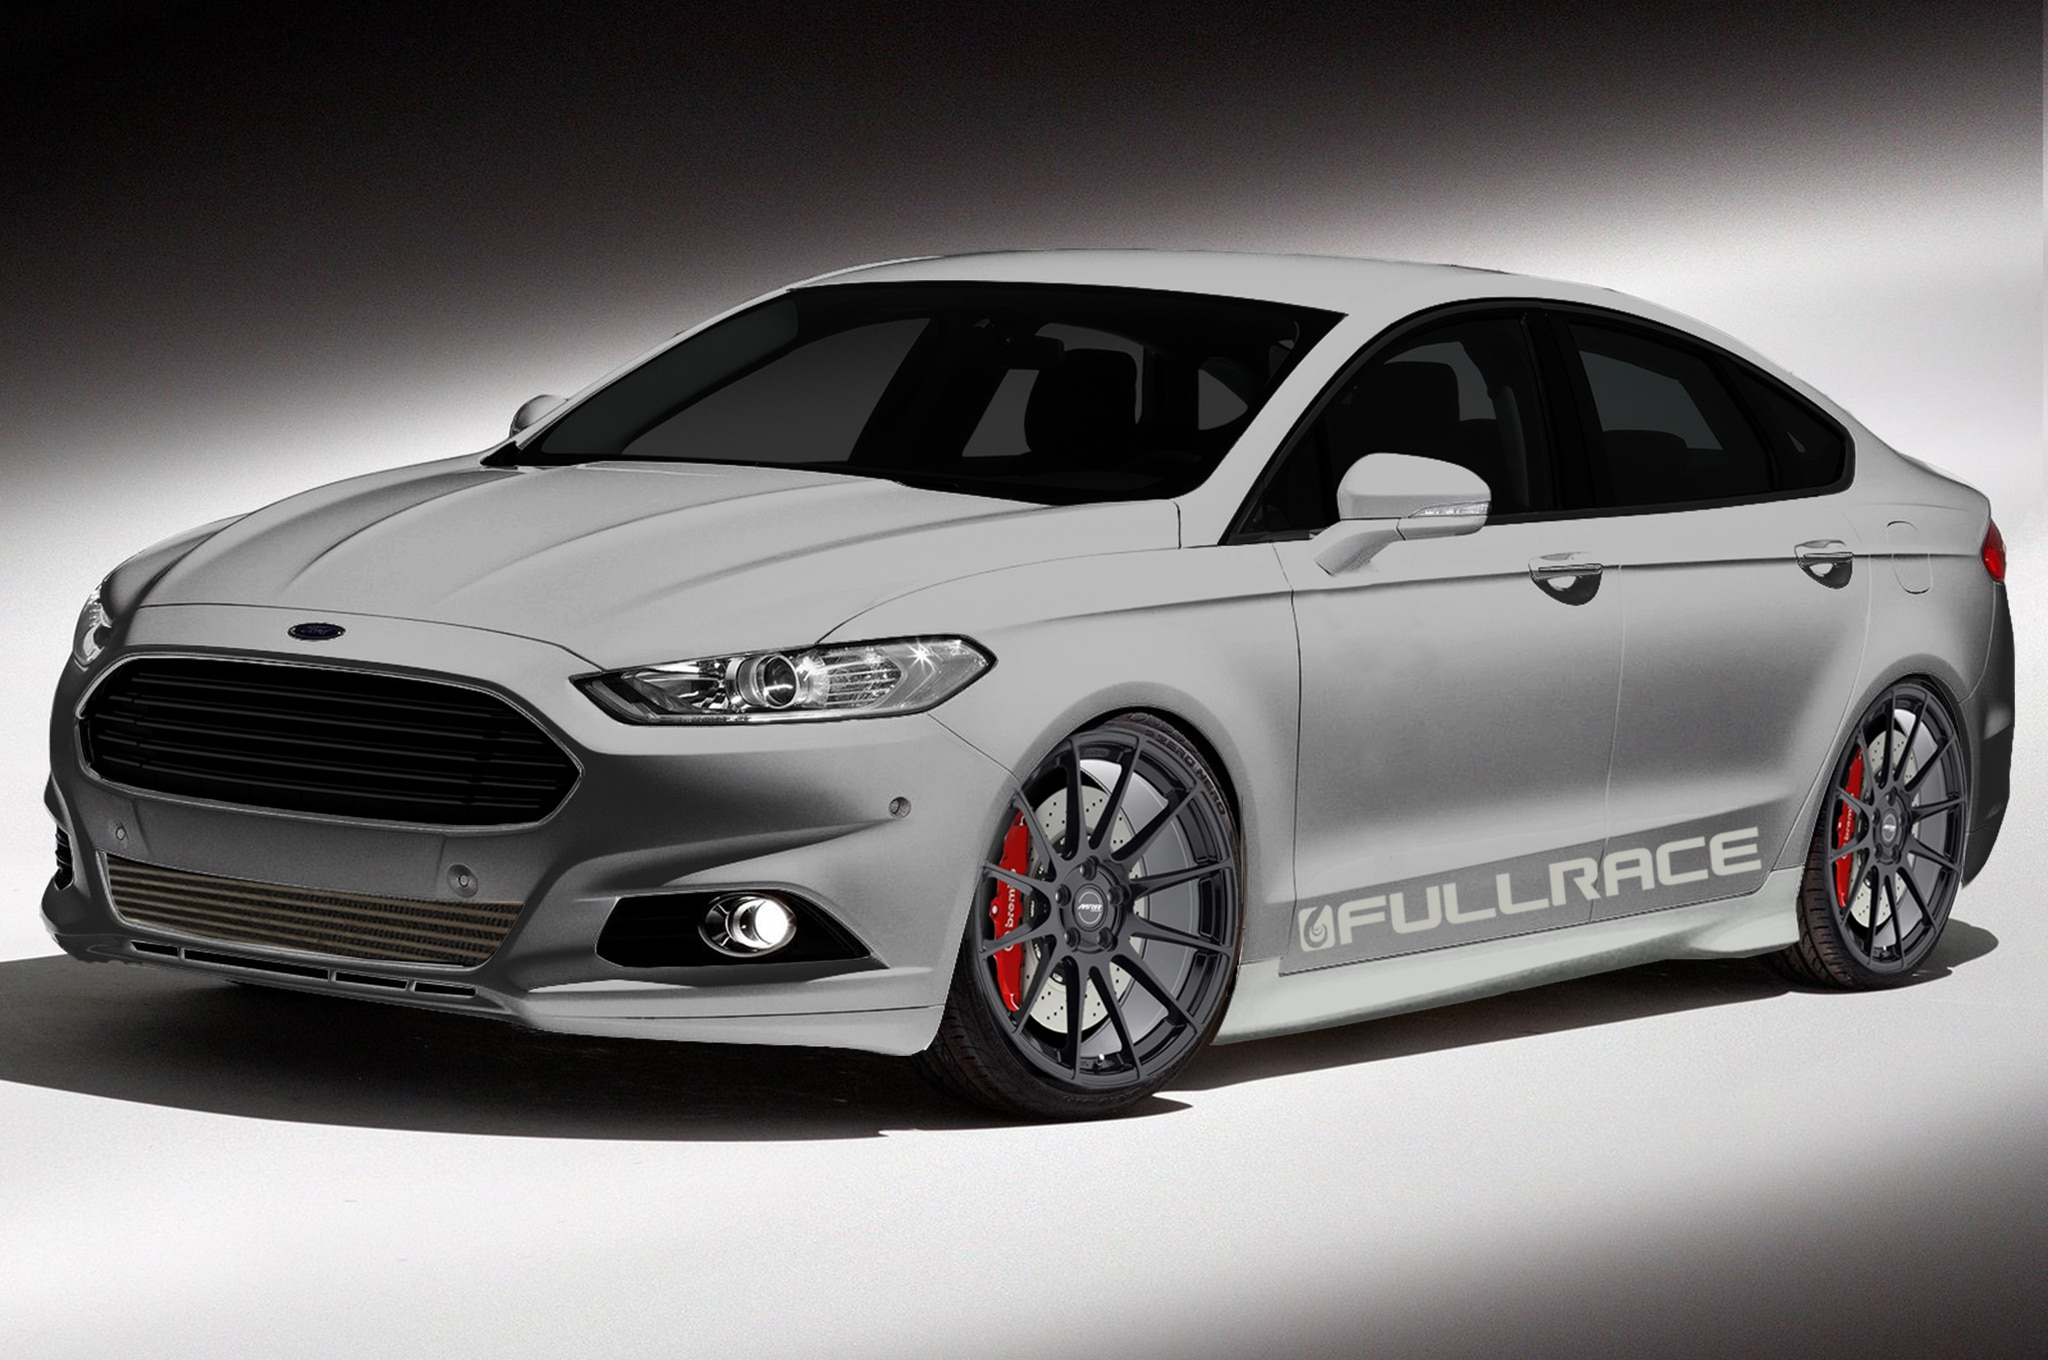 2014 Ford Fusion By Full Race Motorsports1